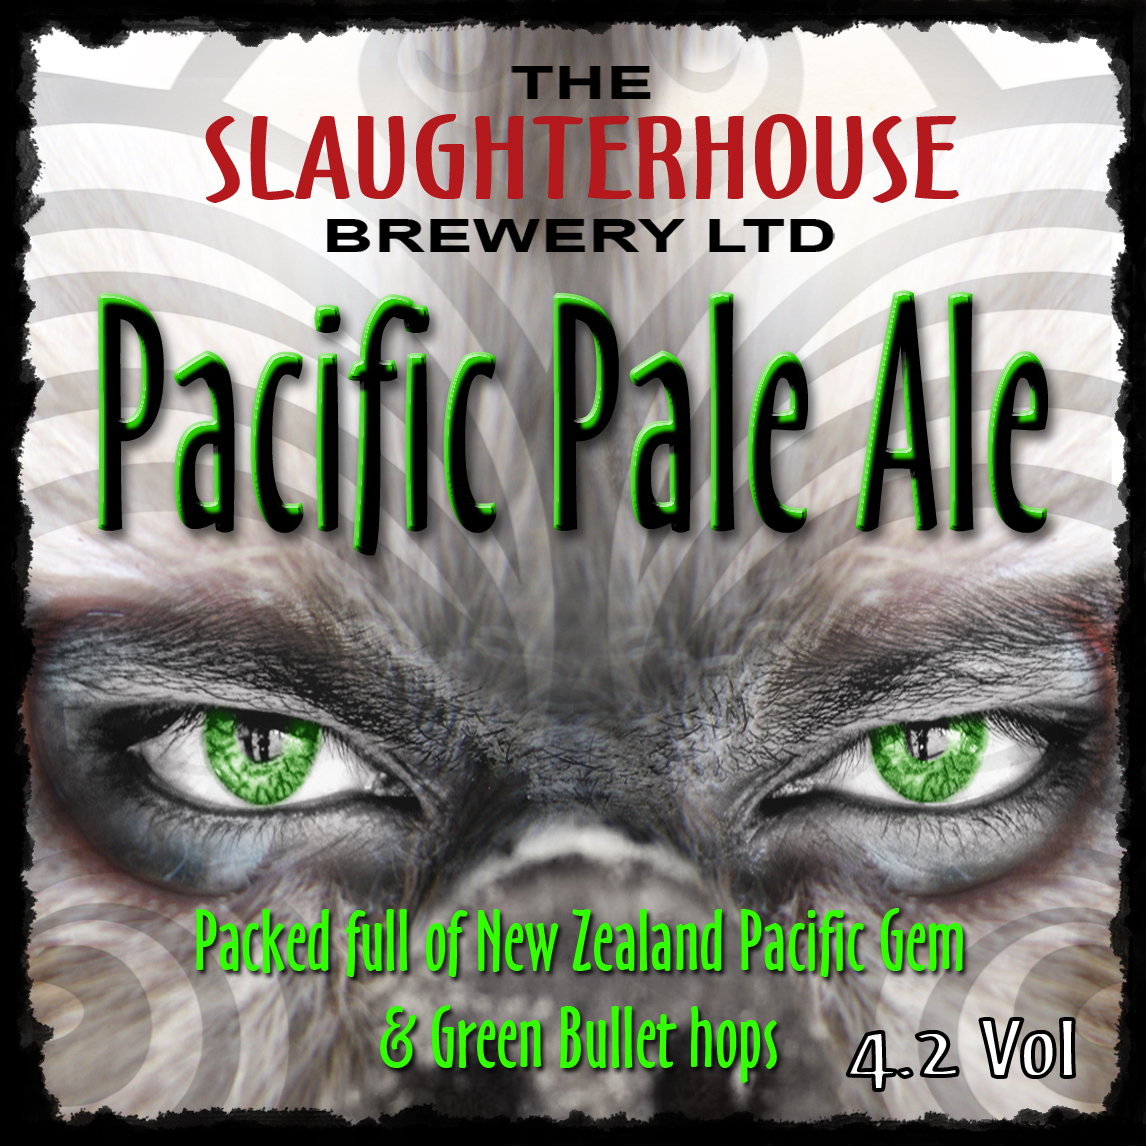 Pacific Pale Ale